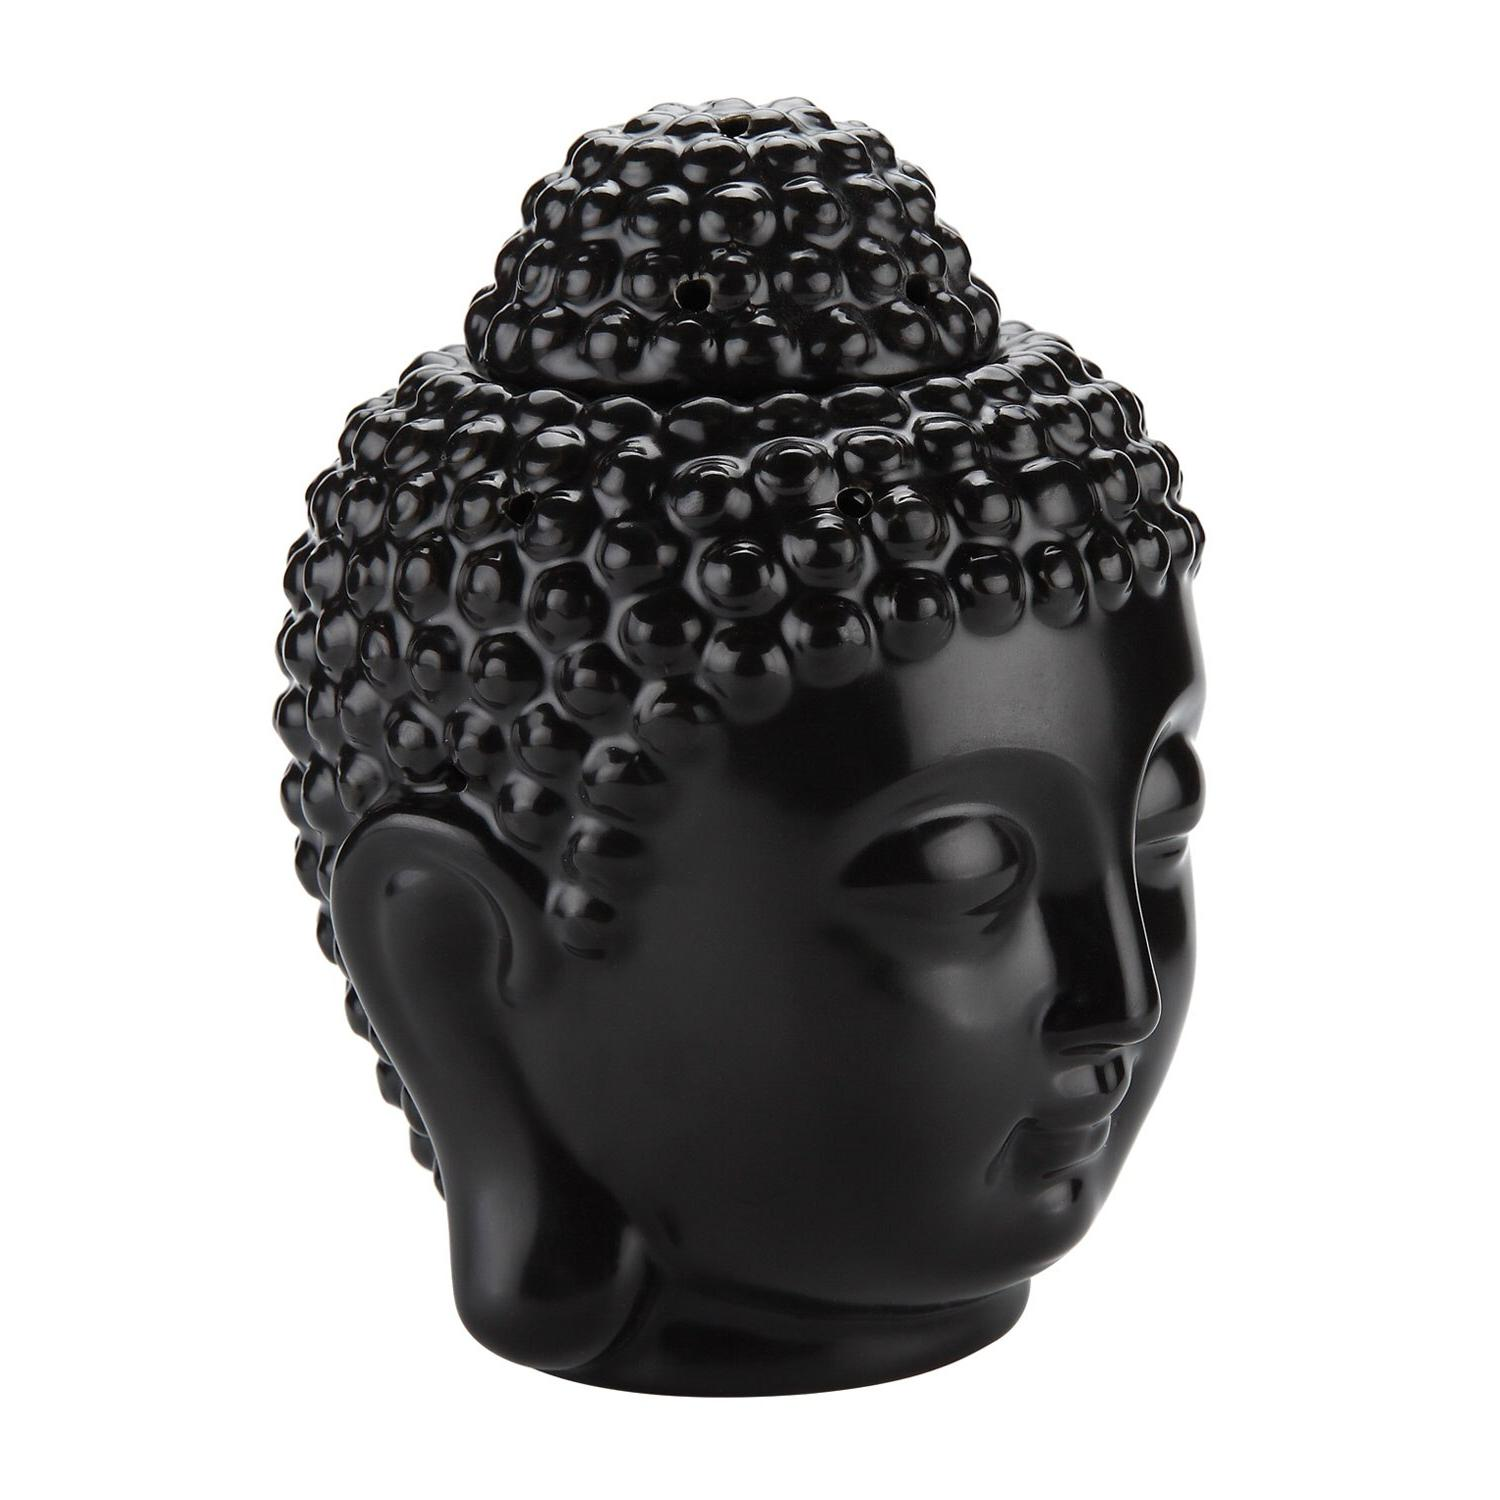 Ceramic Head <font><b>Oil</b></font> with Spoon Aromatherapy <font><b>Wax</b></font> <font><b>Burners</b></font> Diffuser Ornament